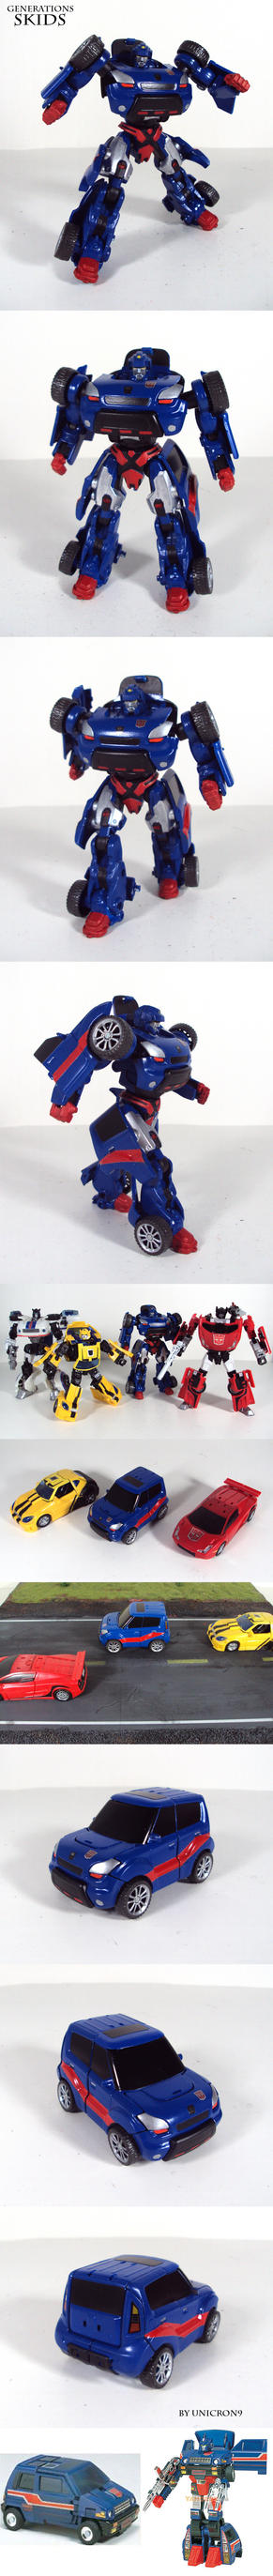 Transformers Generations Skids by Unicron9